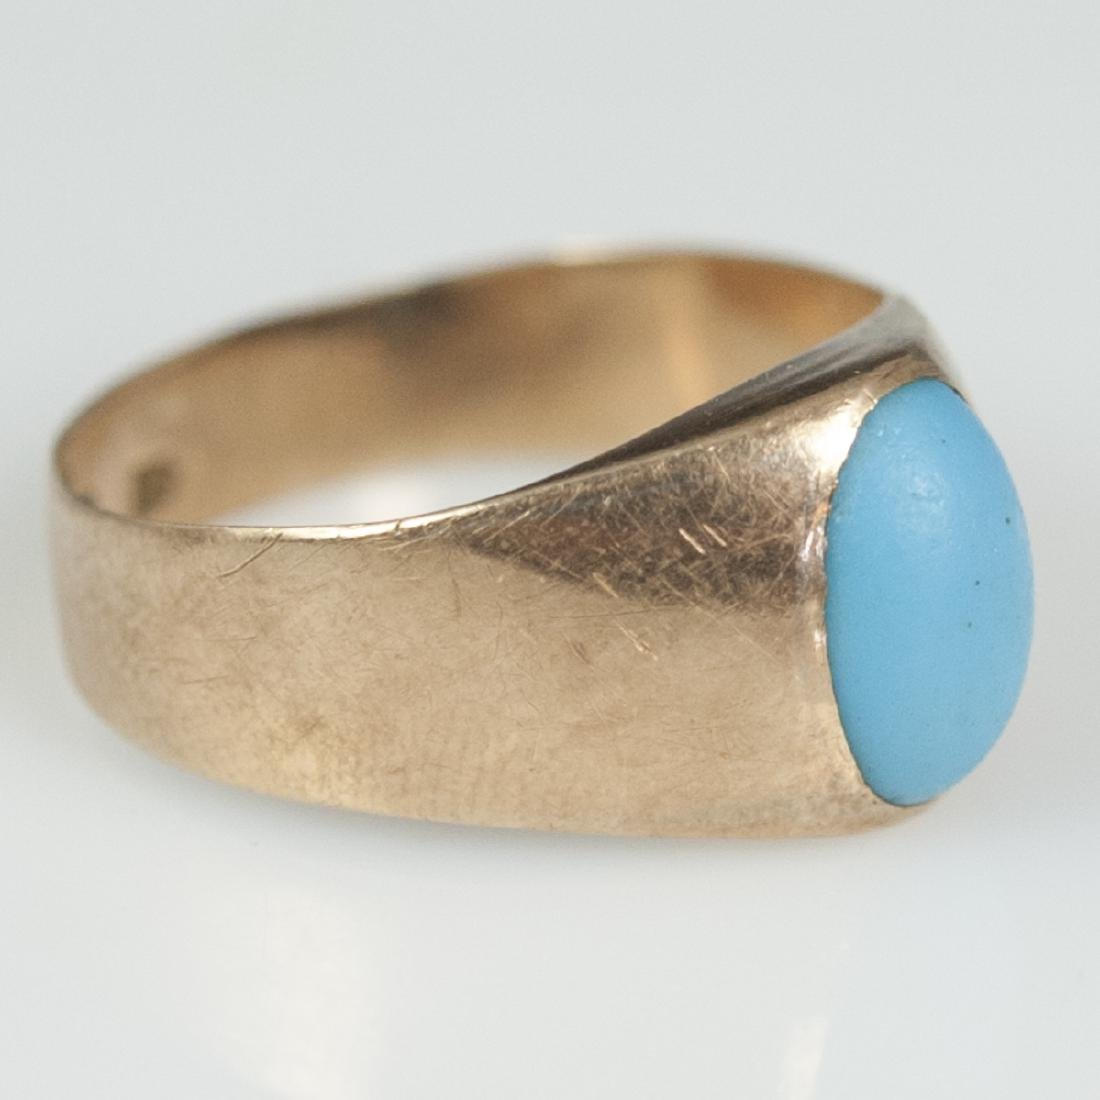 18kt Rose Gold Persian Turquoise Ring - 2